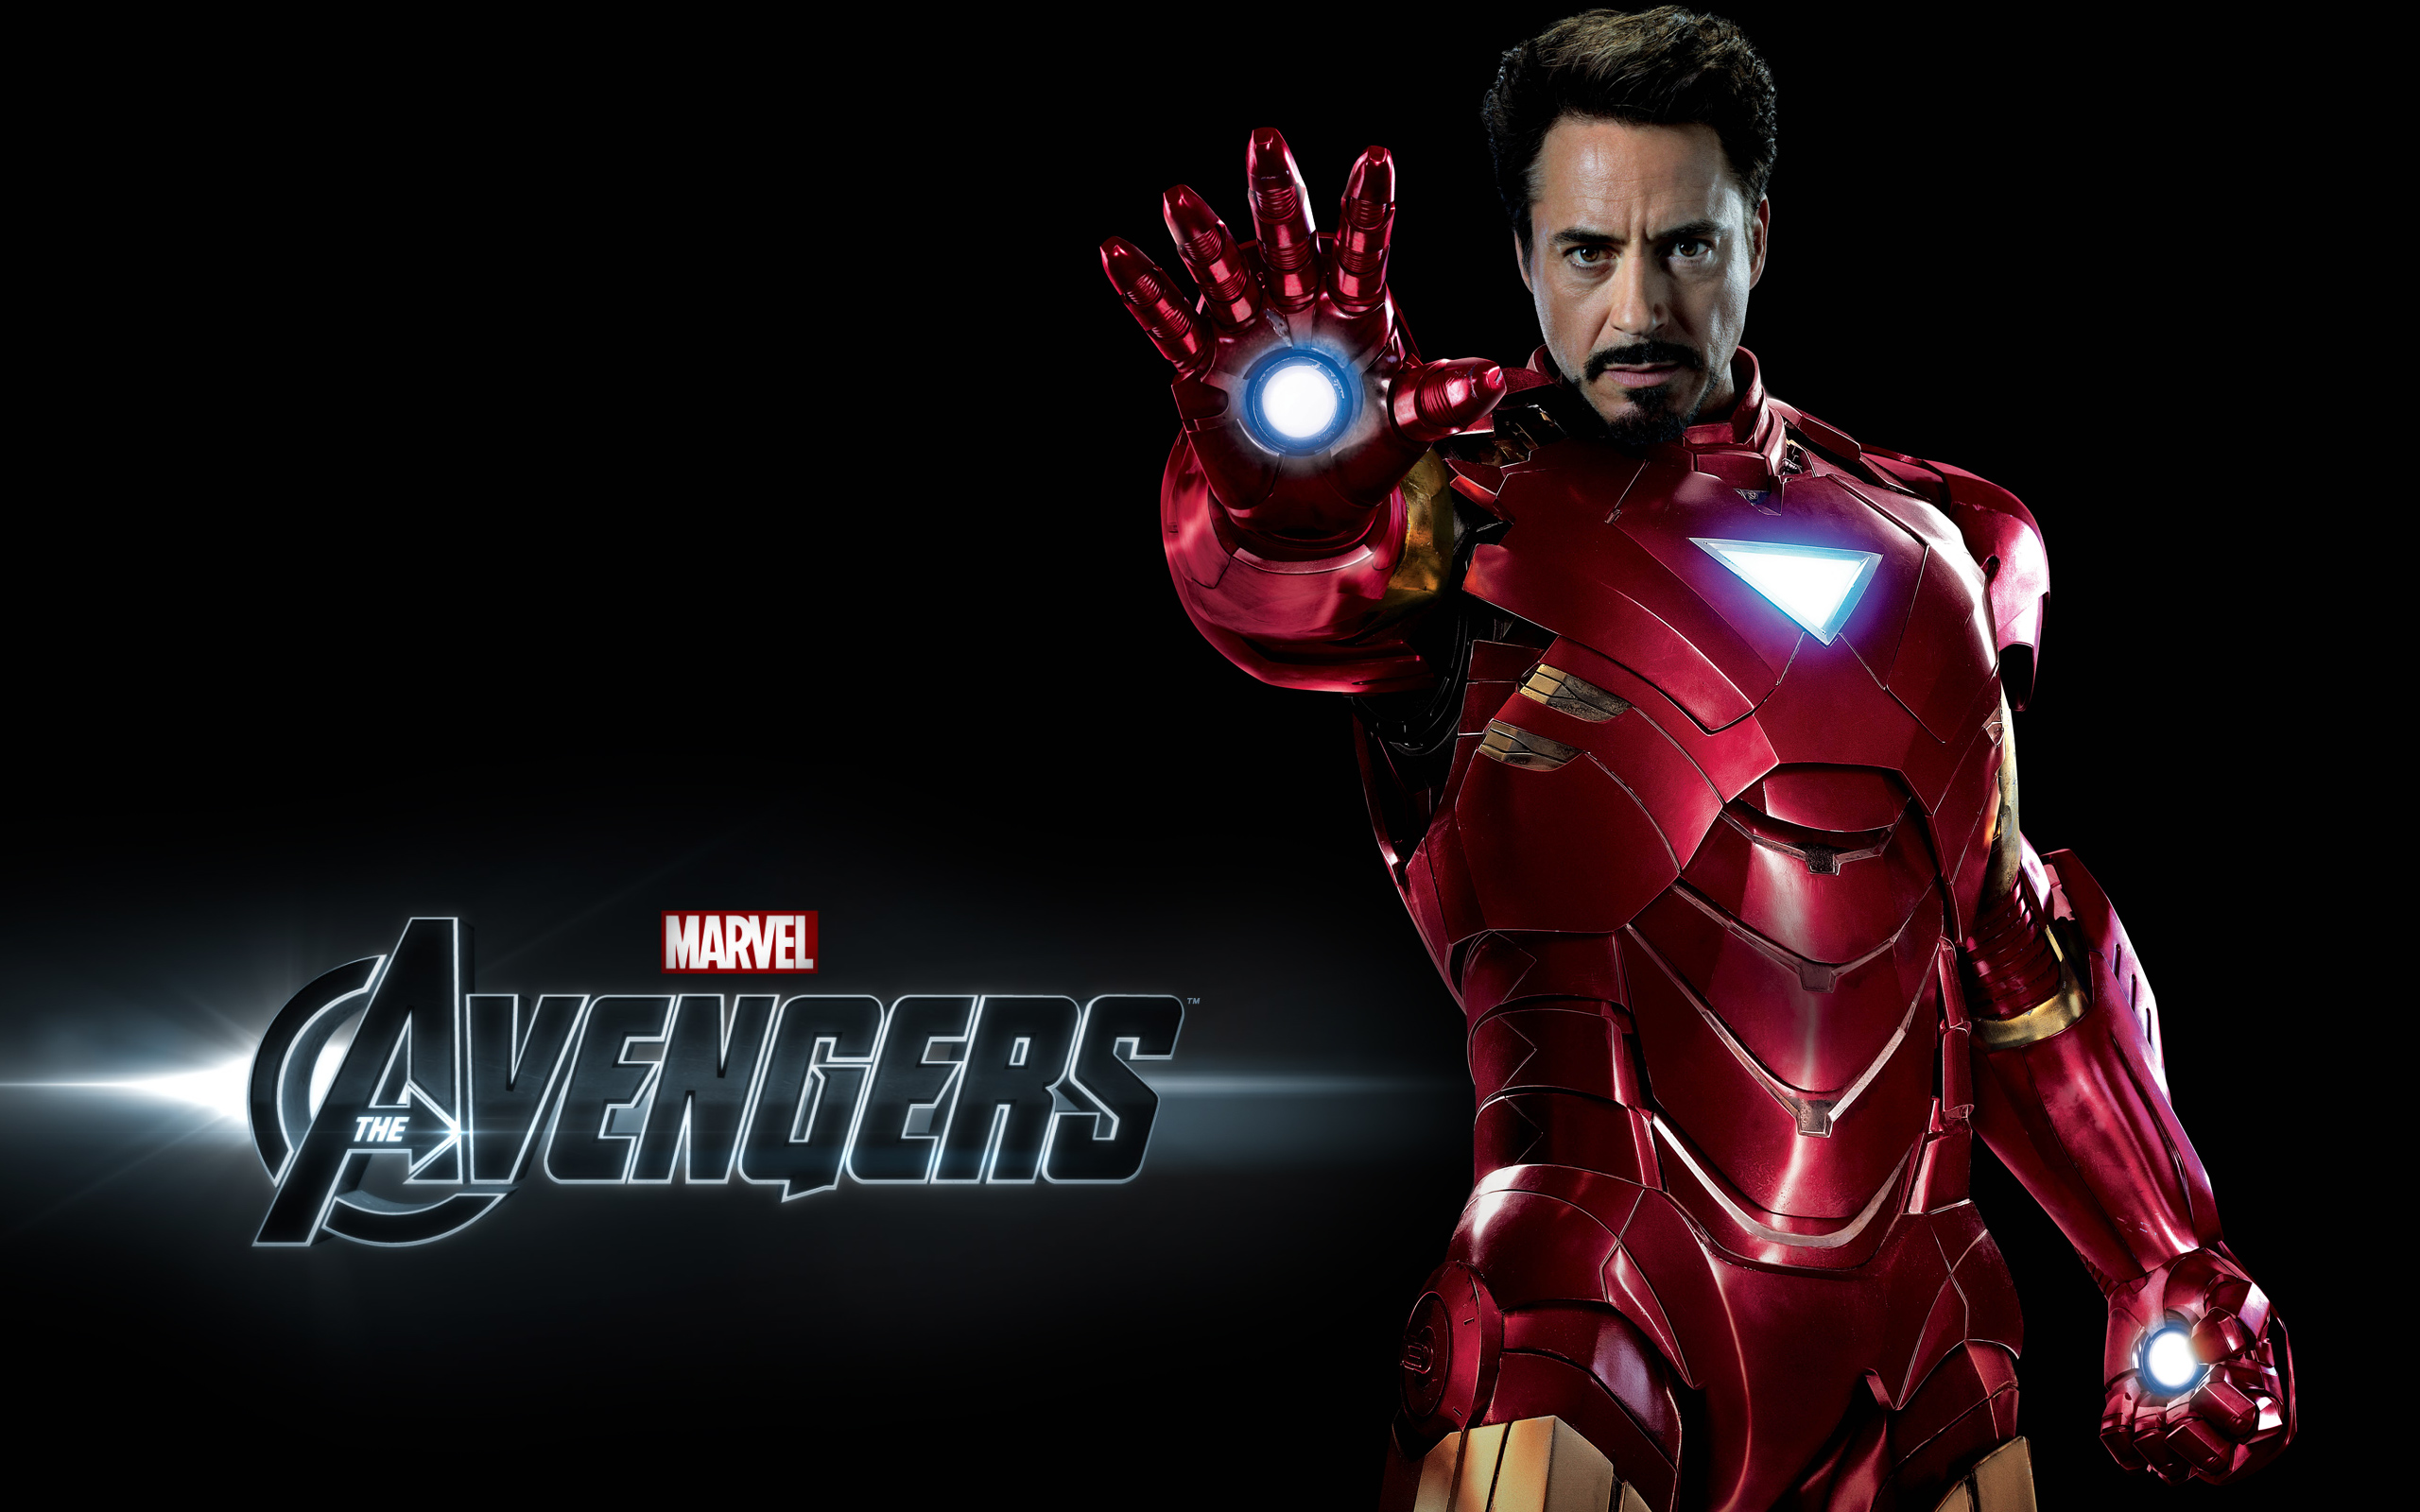 Marvel Avengers Iron Man